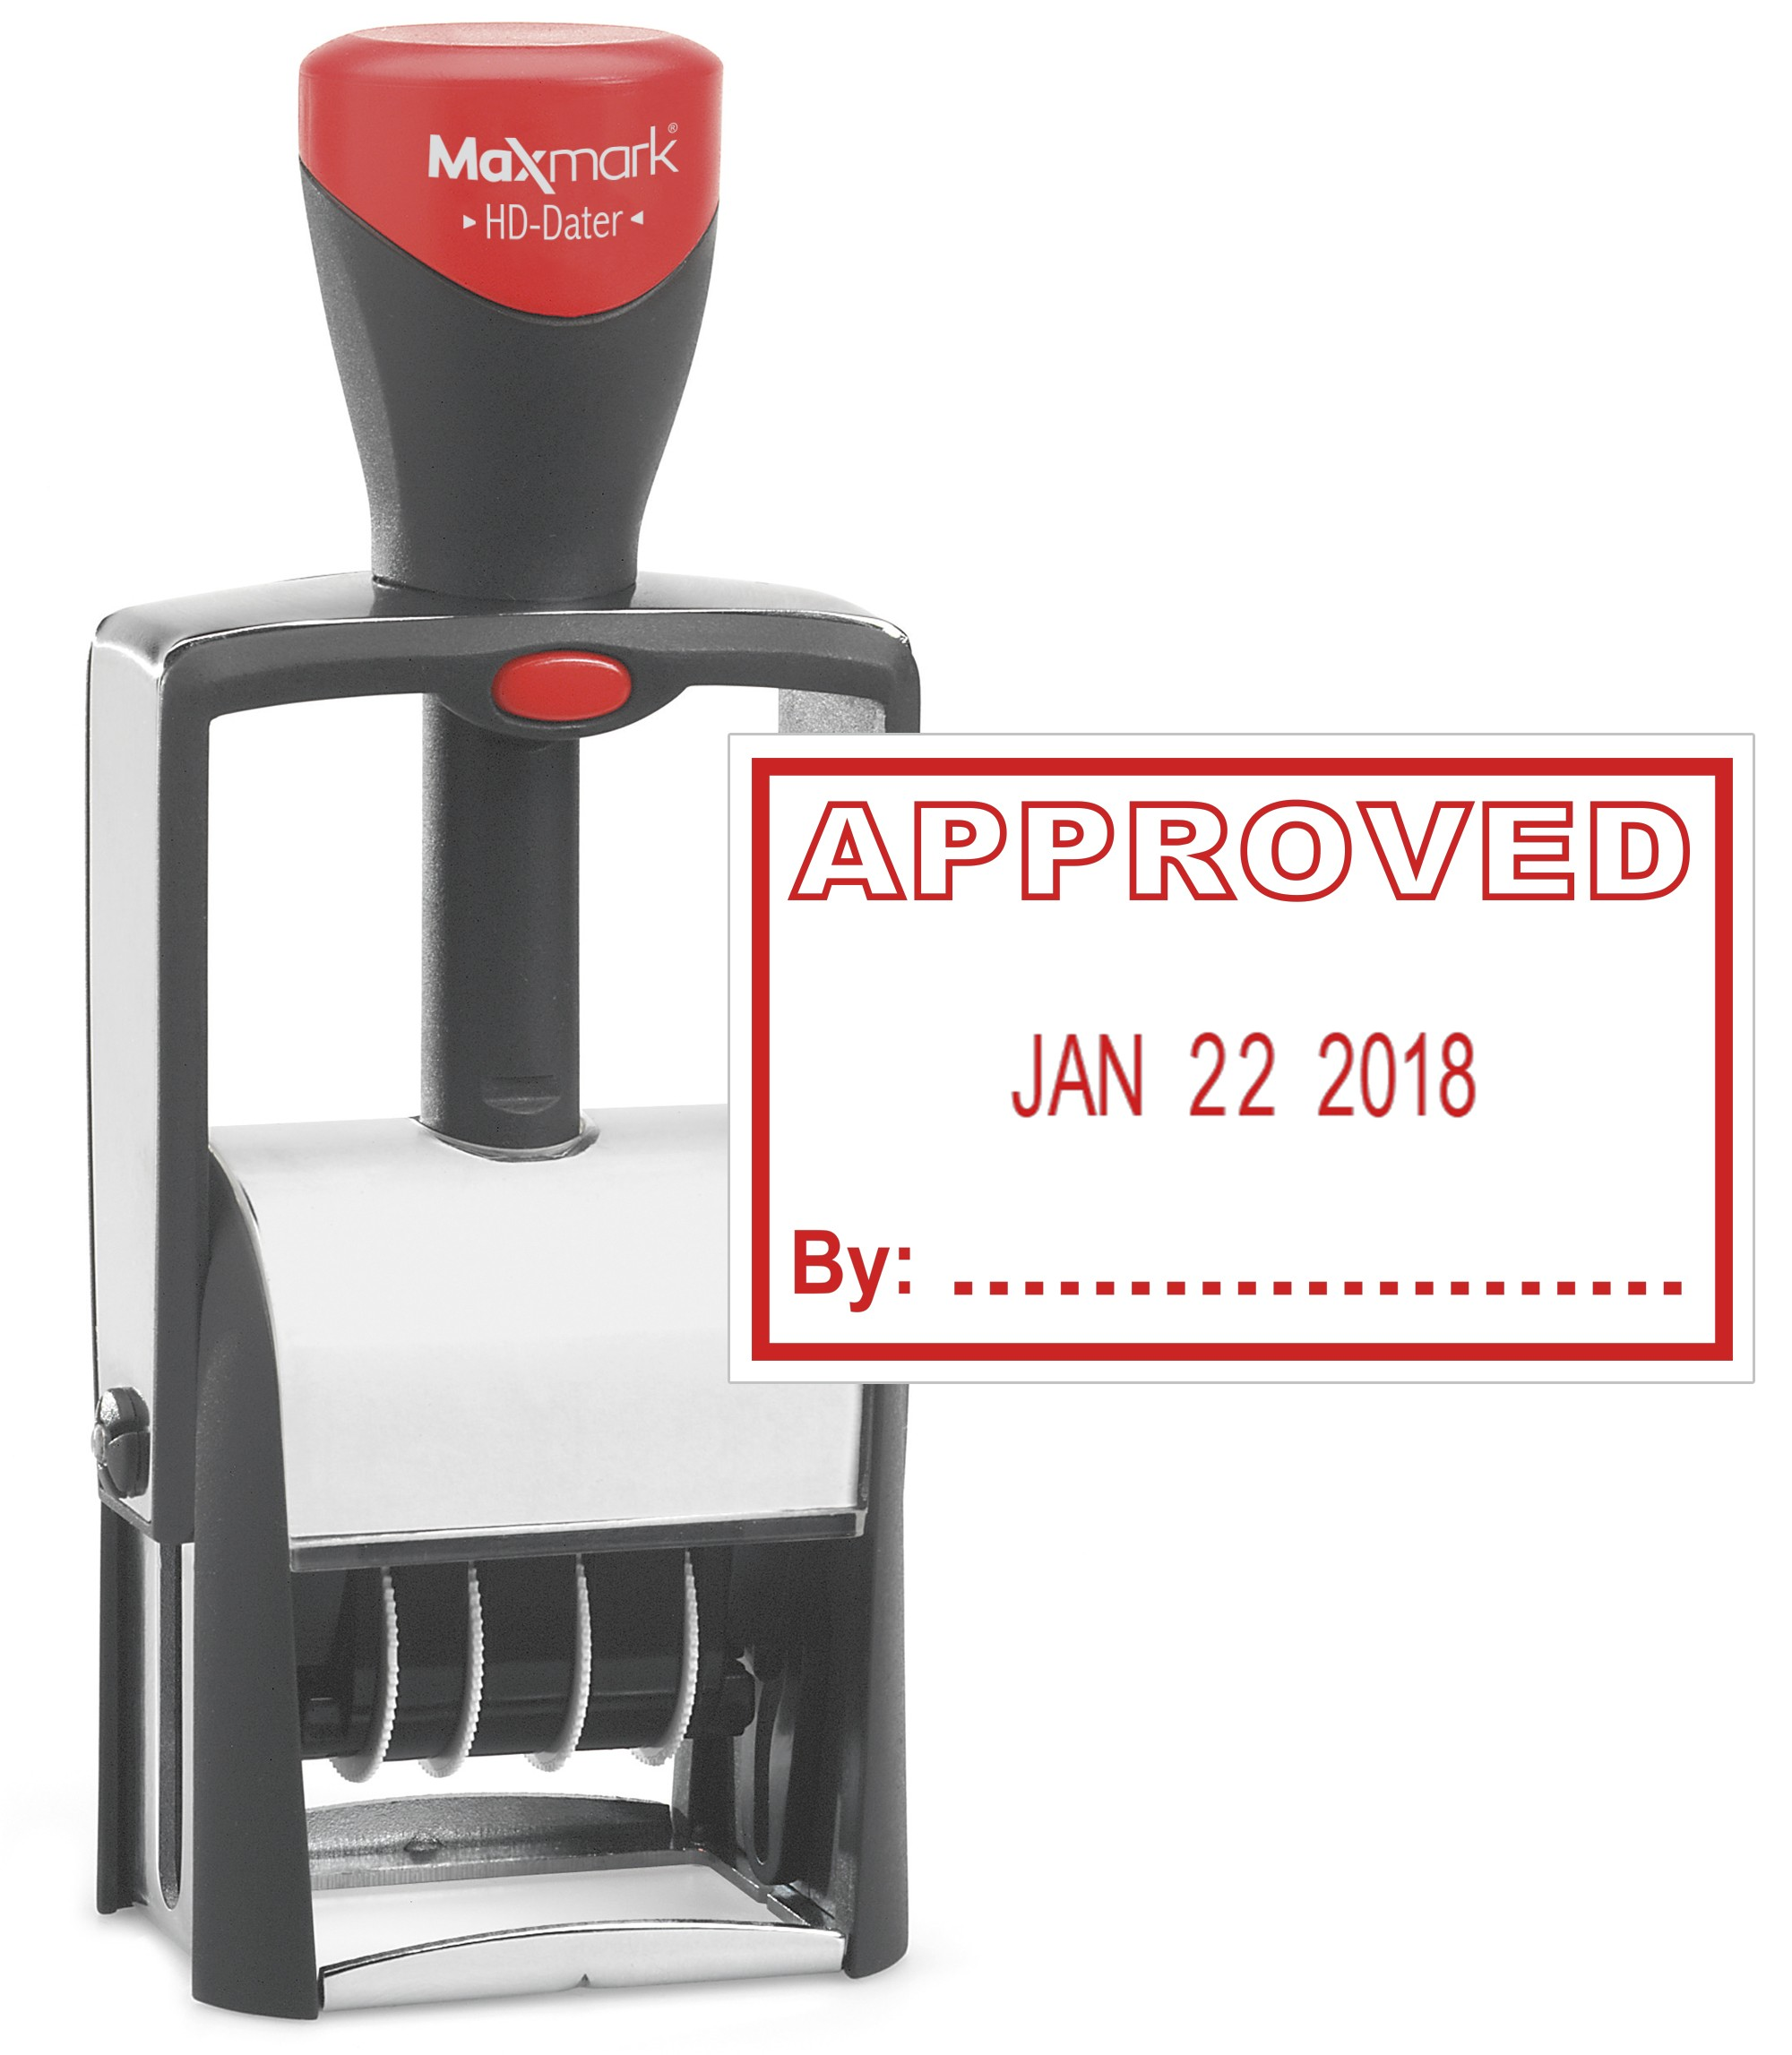 Heavy Duty Date Stamp With Quot Approved Quot Self Inking Stamp